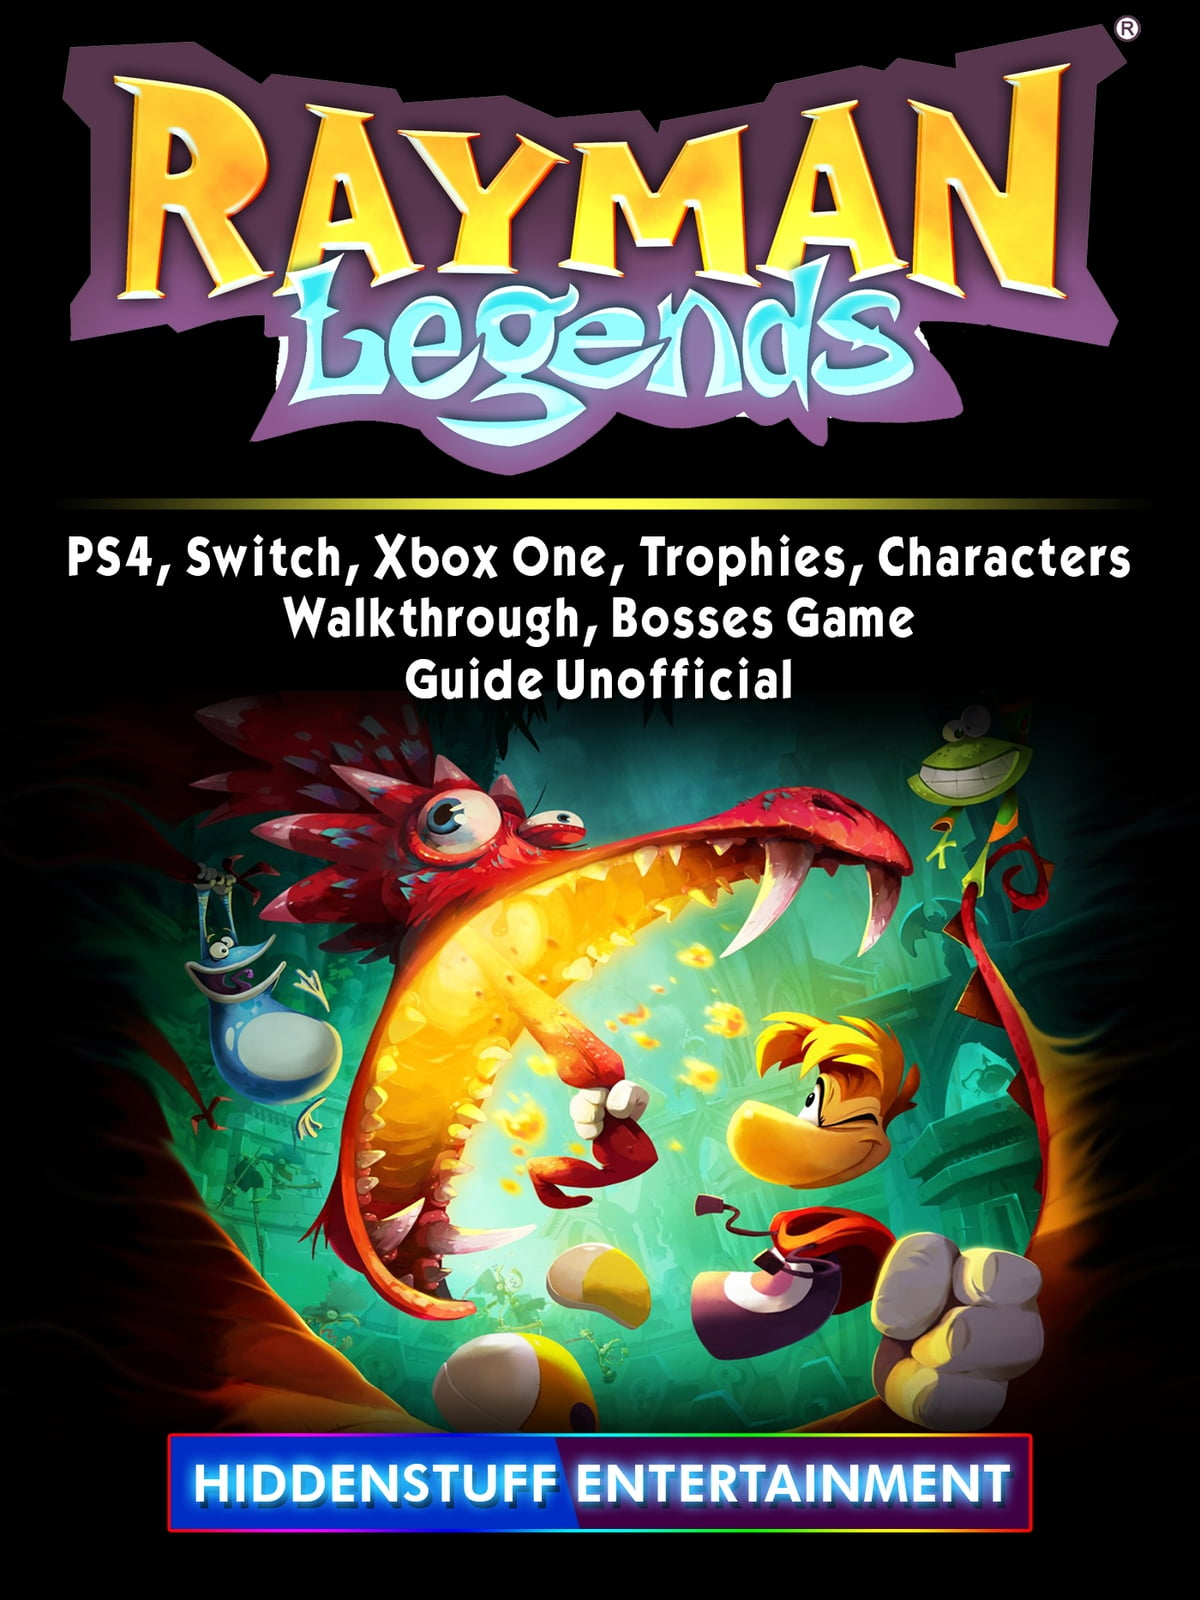 Rayman Legends Xbox One Switch English Pal Games Trophies Characters 900x1200